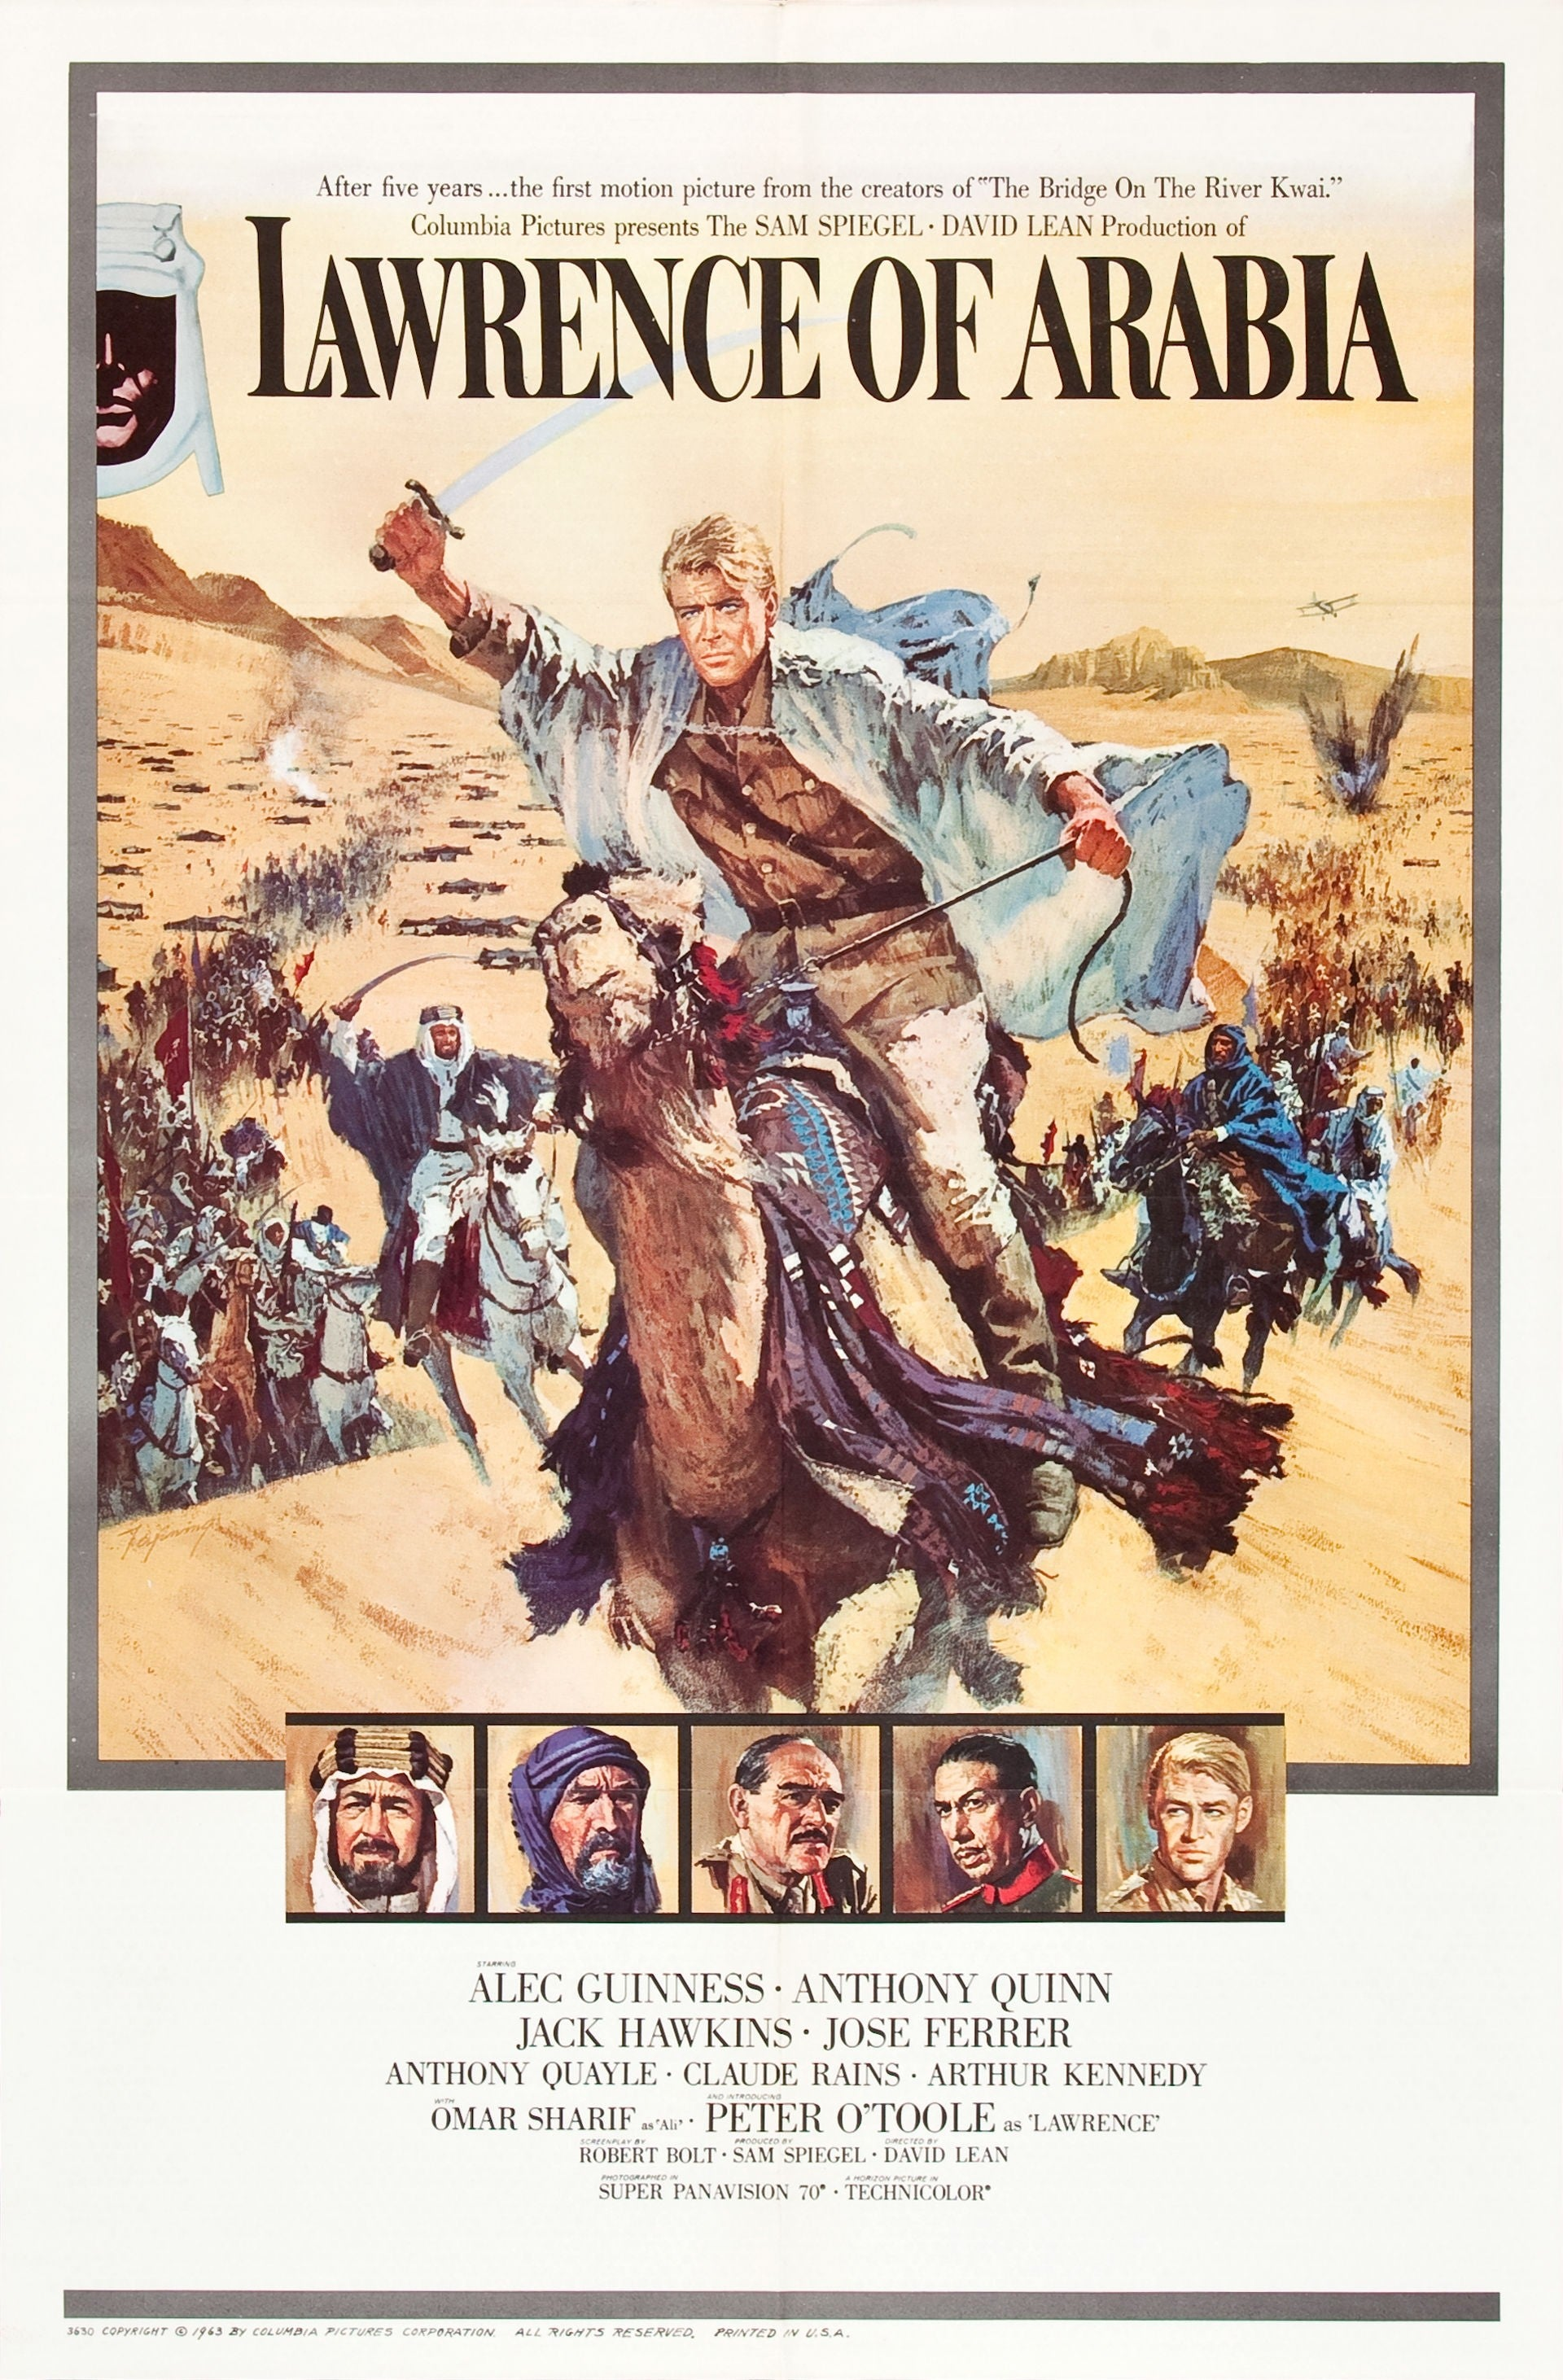 the journey of lawrence and his conflicted experiences during wwi in the film lawrence of arabia